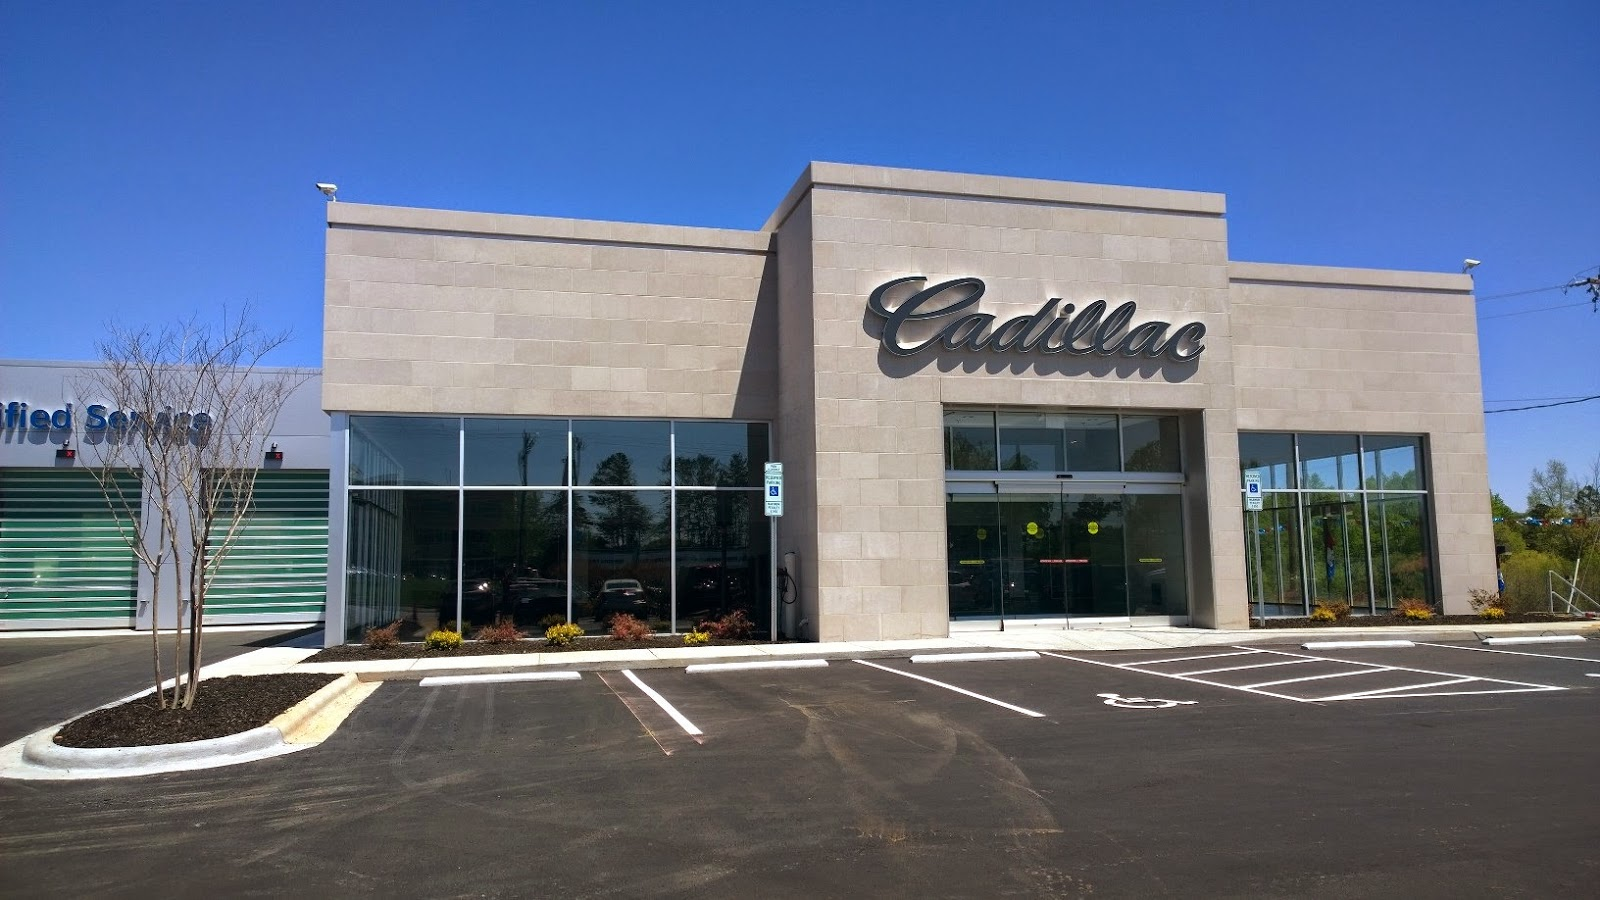 Randy Marion Mooresville >> The Randy Marion Automotive Group: New Cadillac Building and Service Lanes NOW OPEN